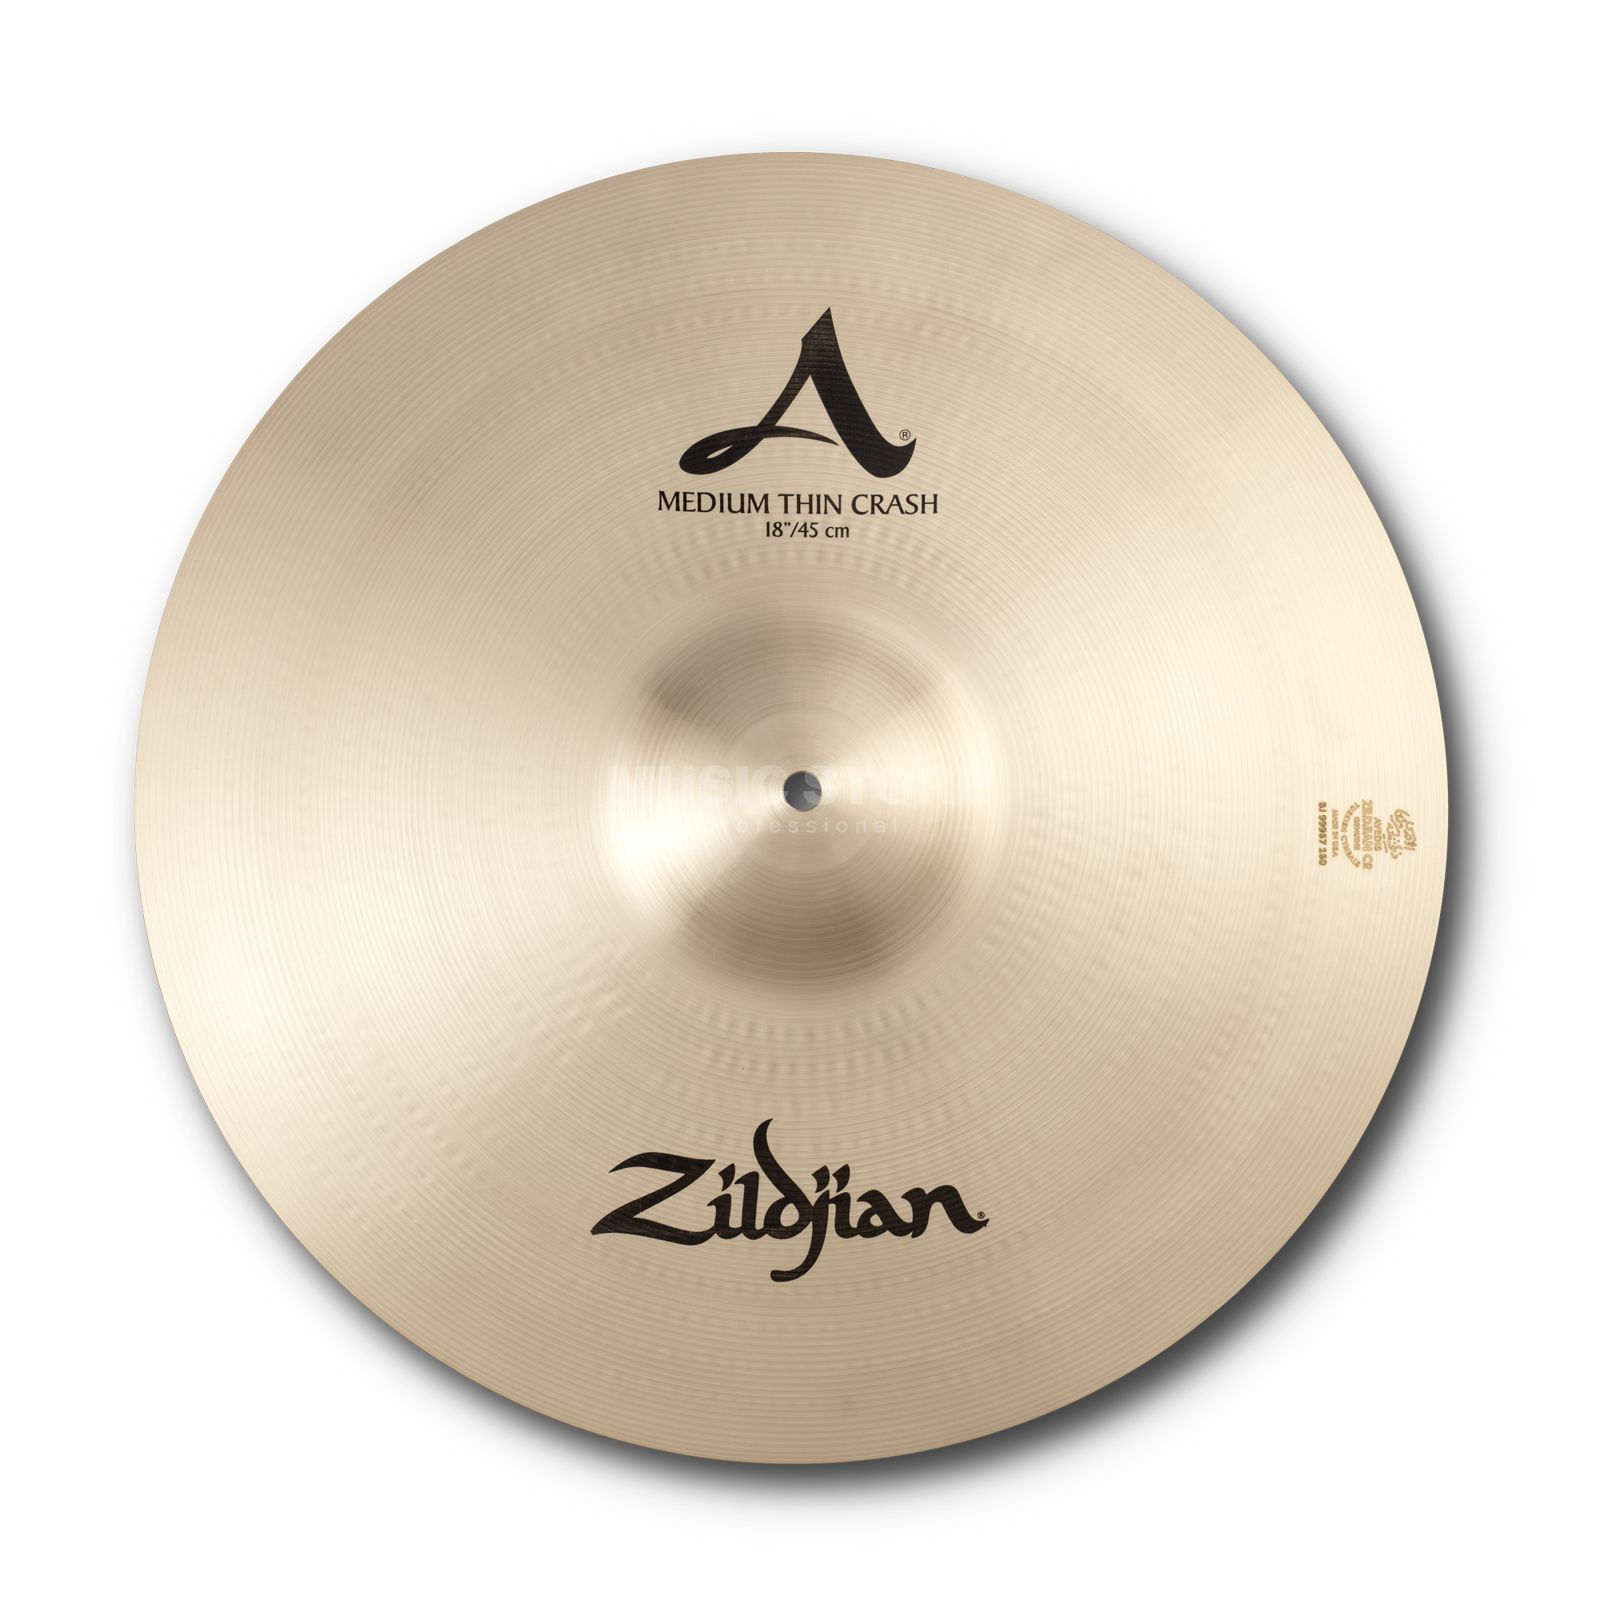 "Zildjian A' Zildjian Med/Thin Crash 18"", Traditional Finish Produktbillede"